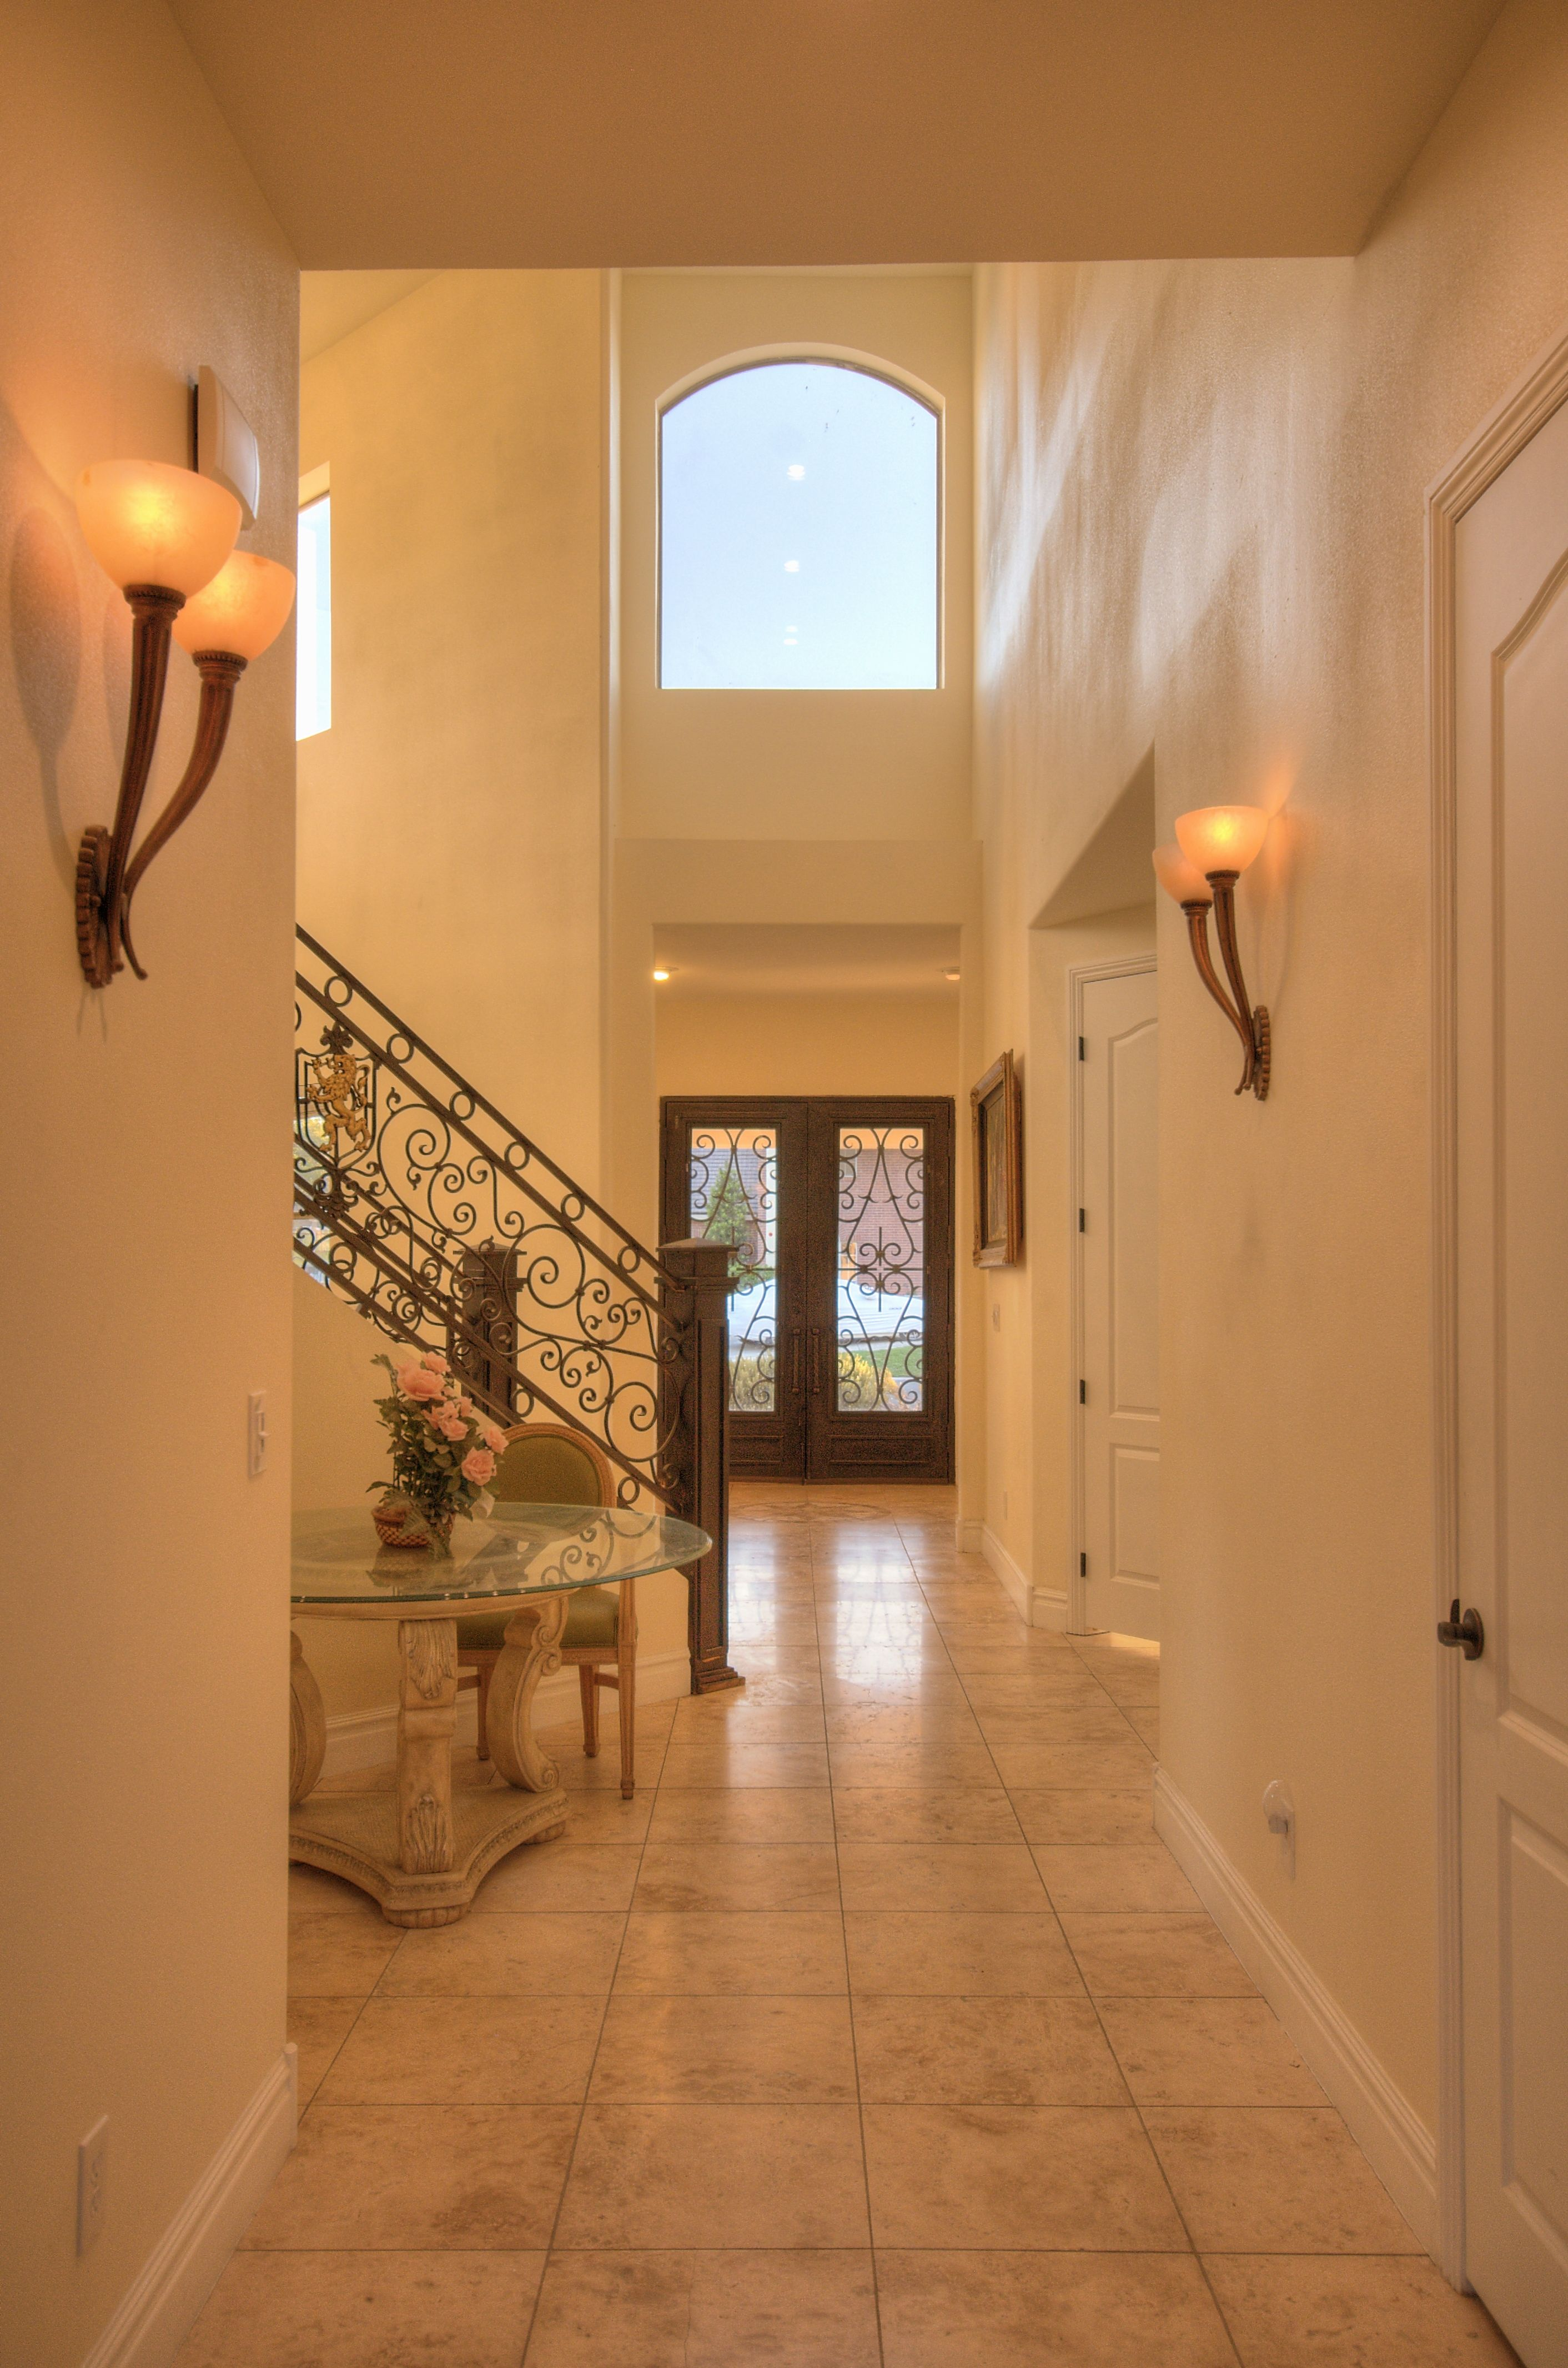 Wall Sconces Hallway Stairs